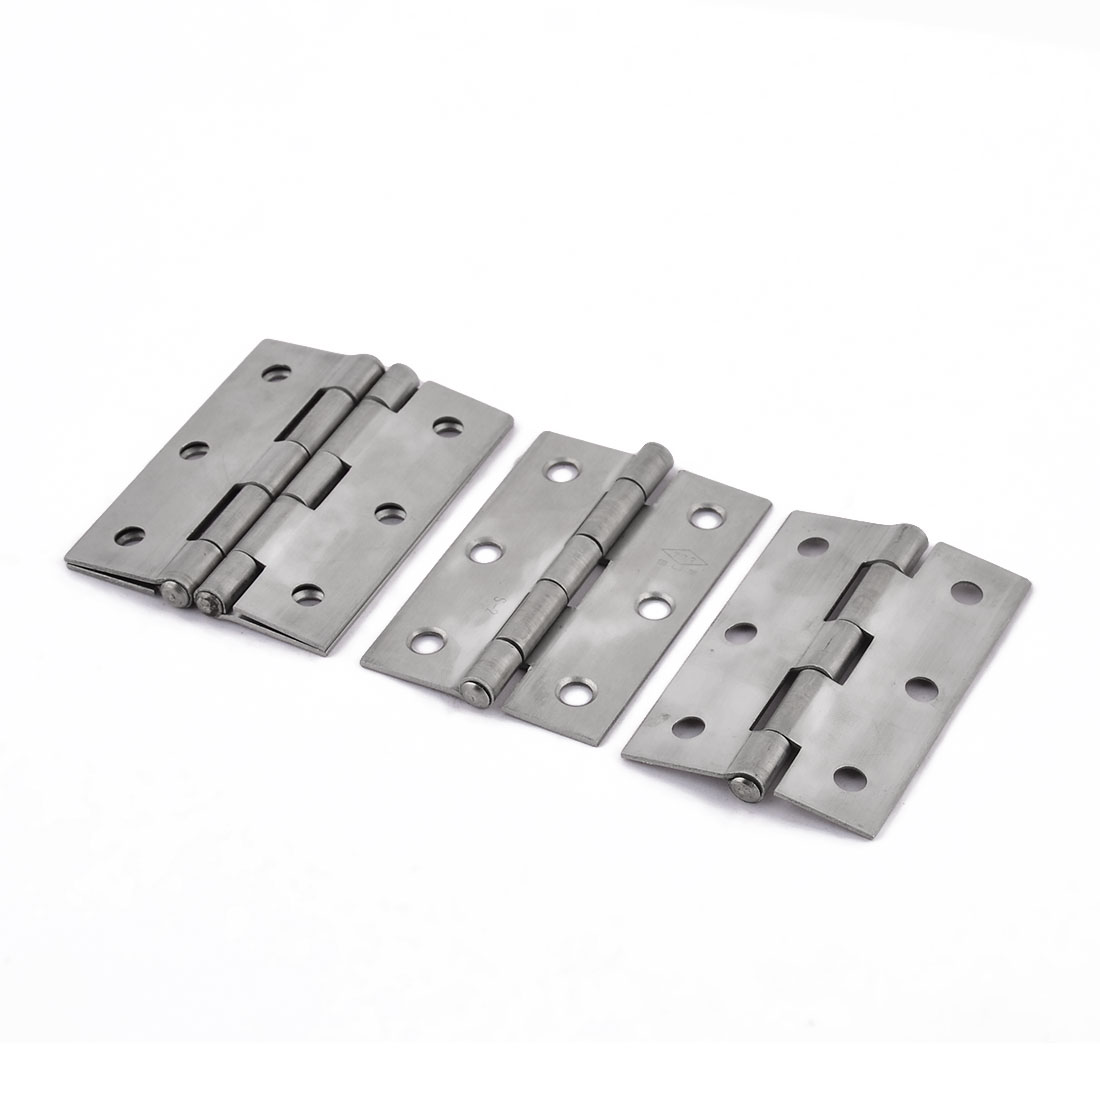 Door Jewelry Box Case 63 x 42mm Stainless Steel Folding Butt Hinges 4 PCS